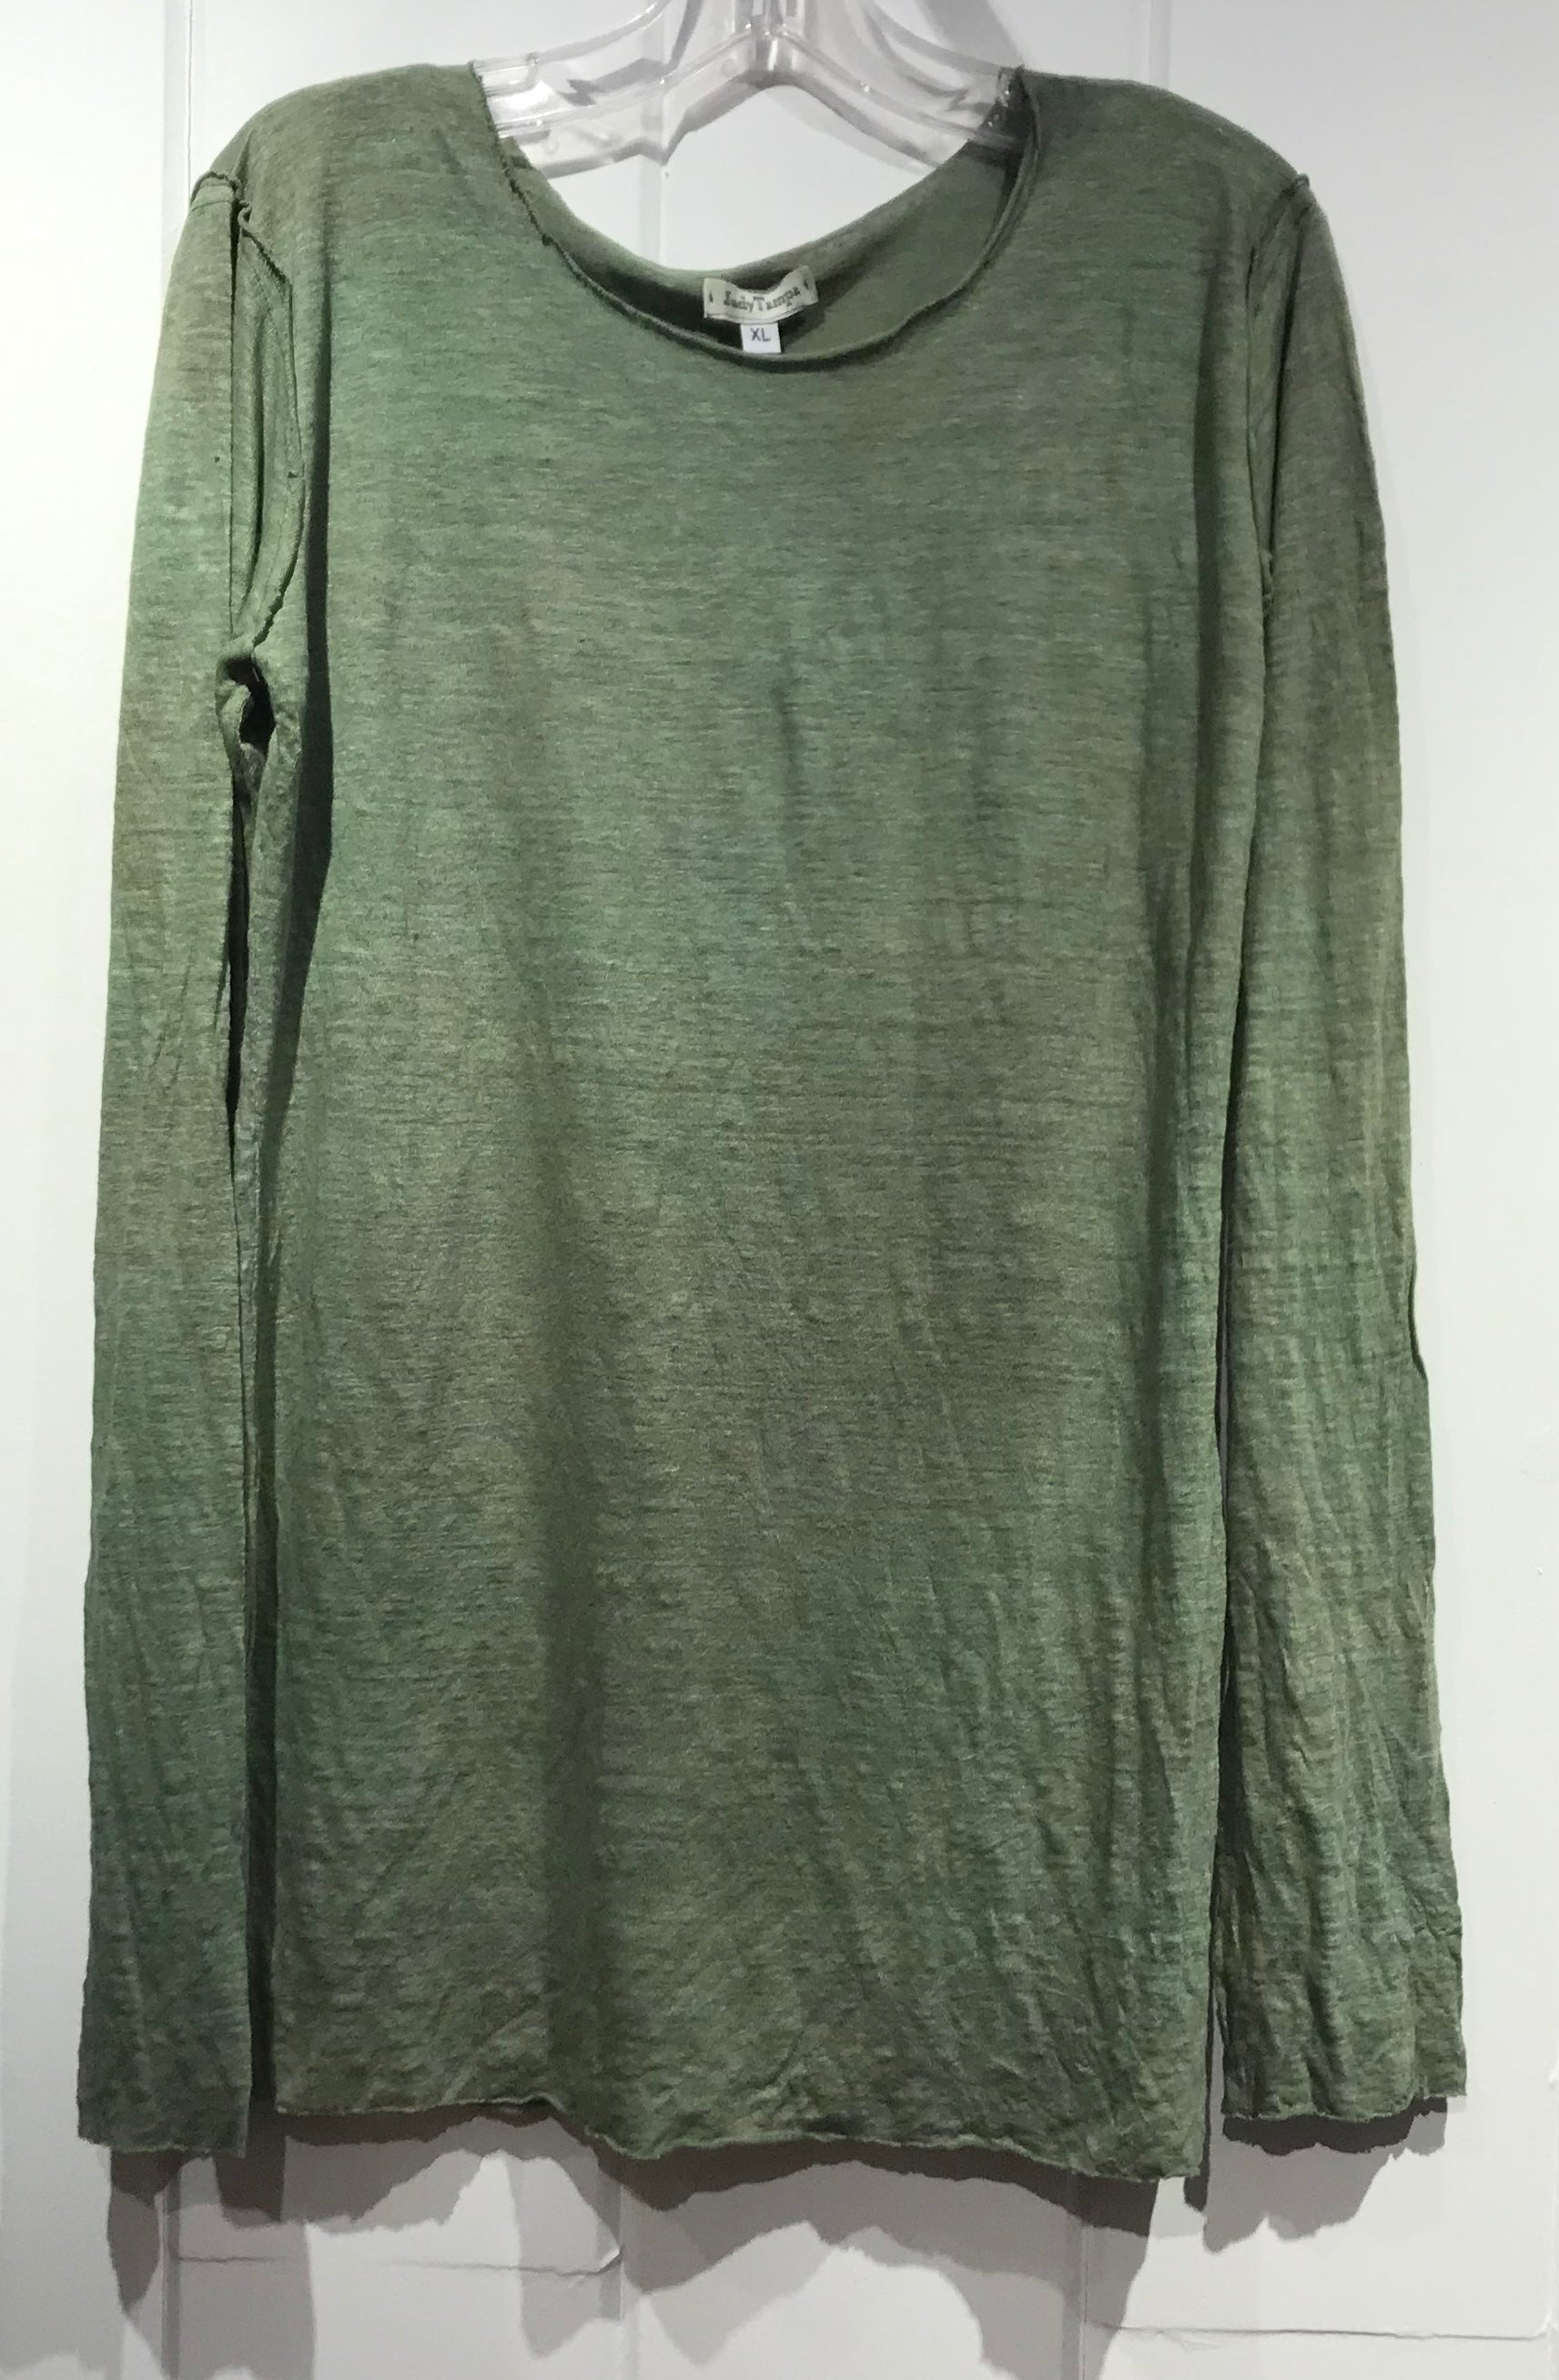 Judy Tampa Linen Knit Pullover in Green in Size XL on Sale